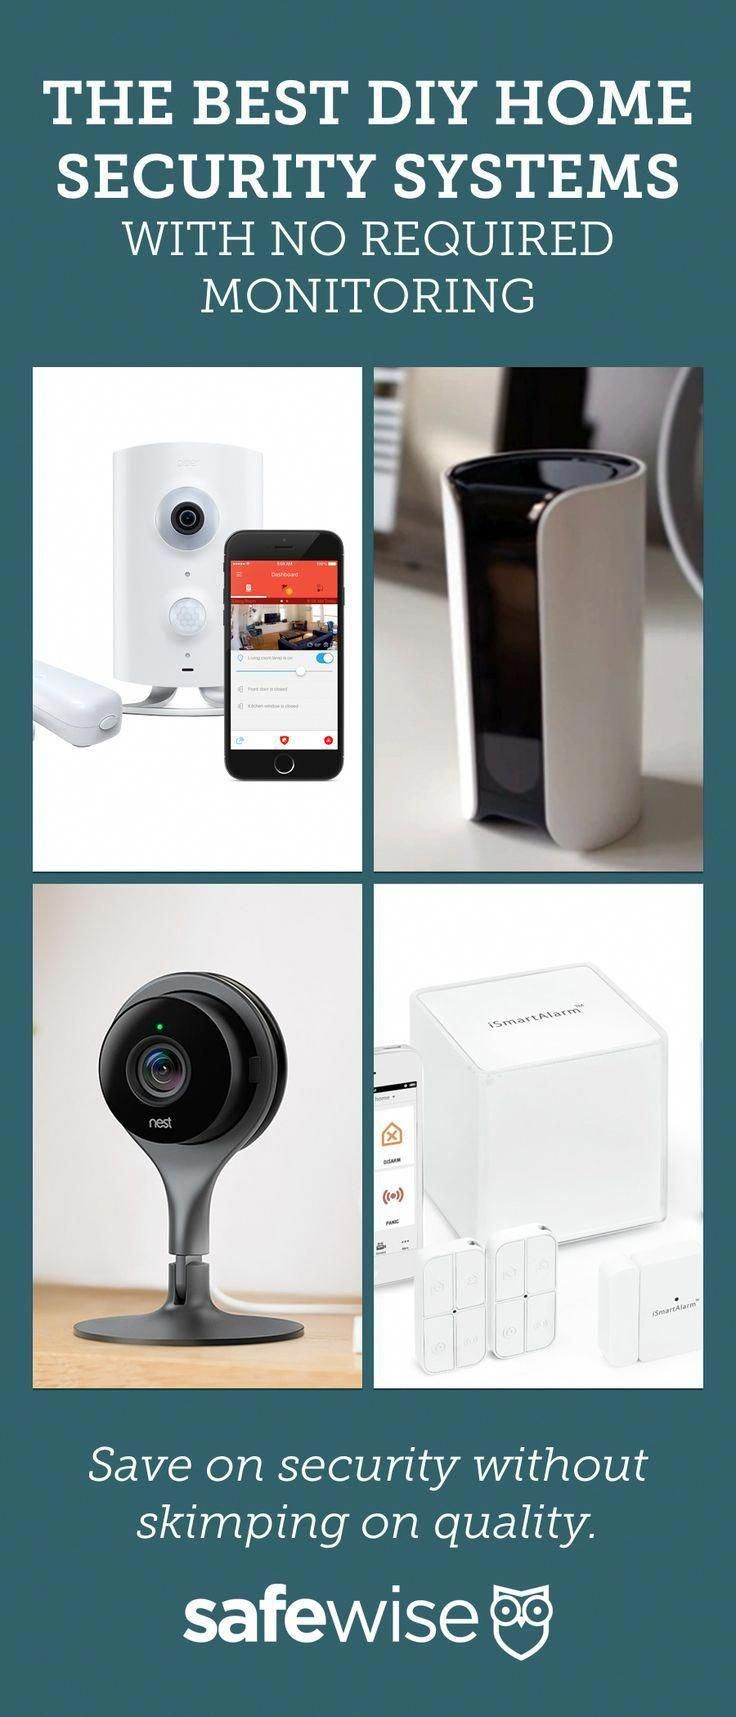 Save On Security Without Skimping On Quality Secure Your Home Affordably With Diy Home Security S Diy Home Security Home Security Tips Alarm Systems For Home